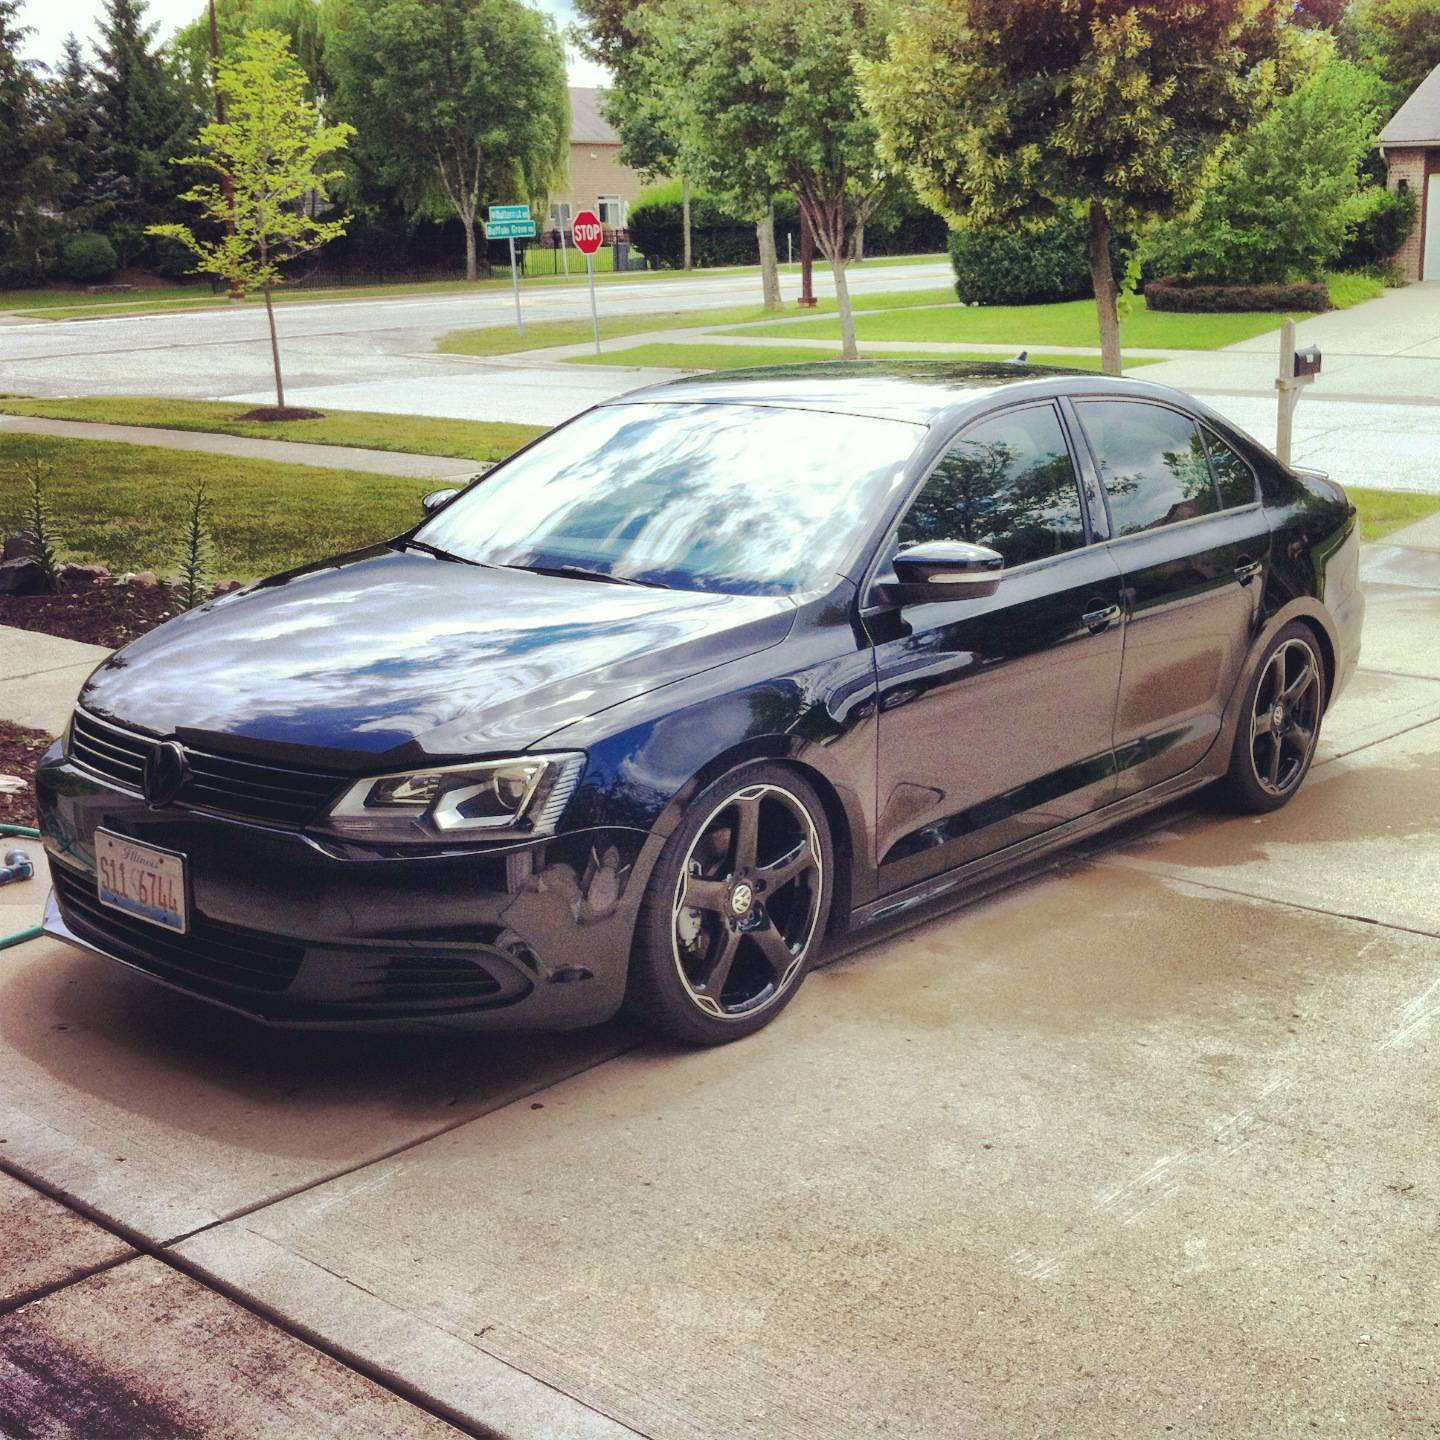 attachment Cool Review About Vw Jetta 2.5 with Inspiring Images Cars Review